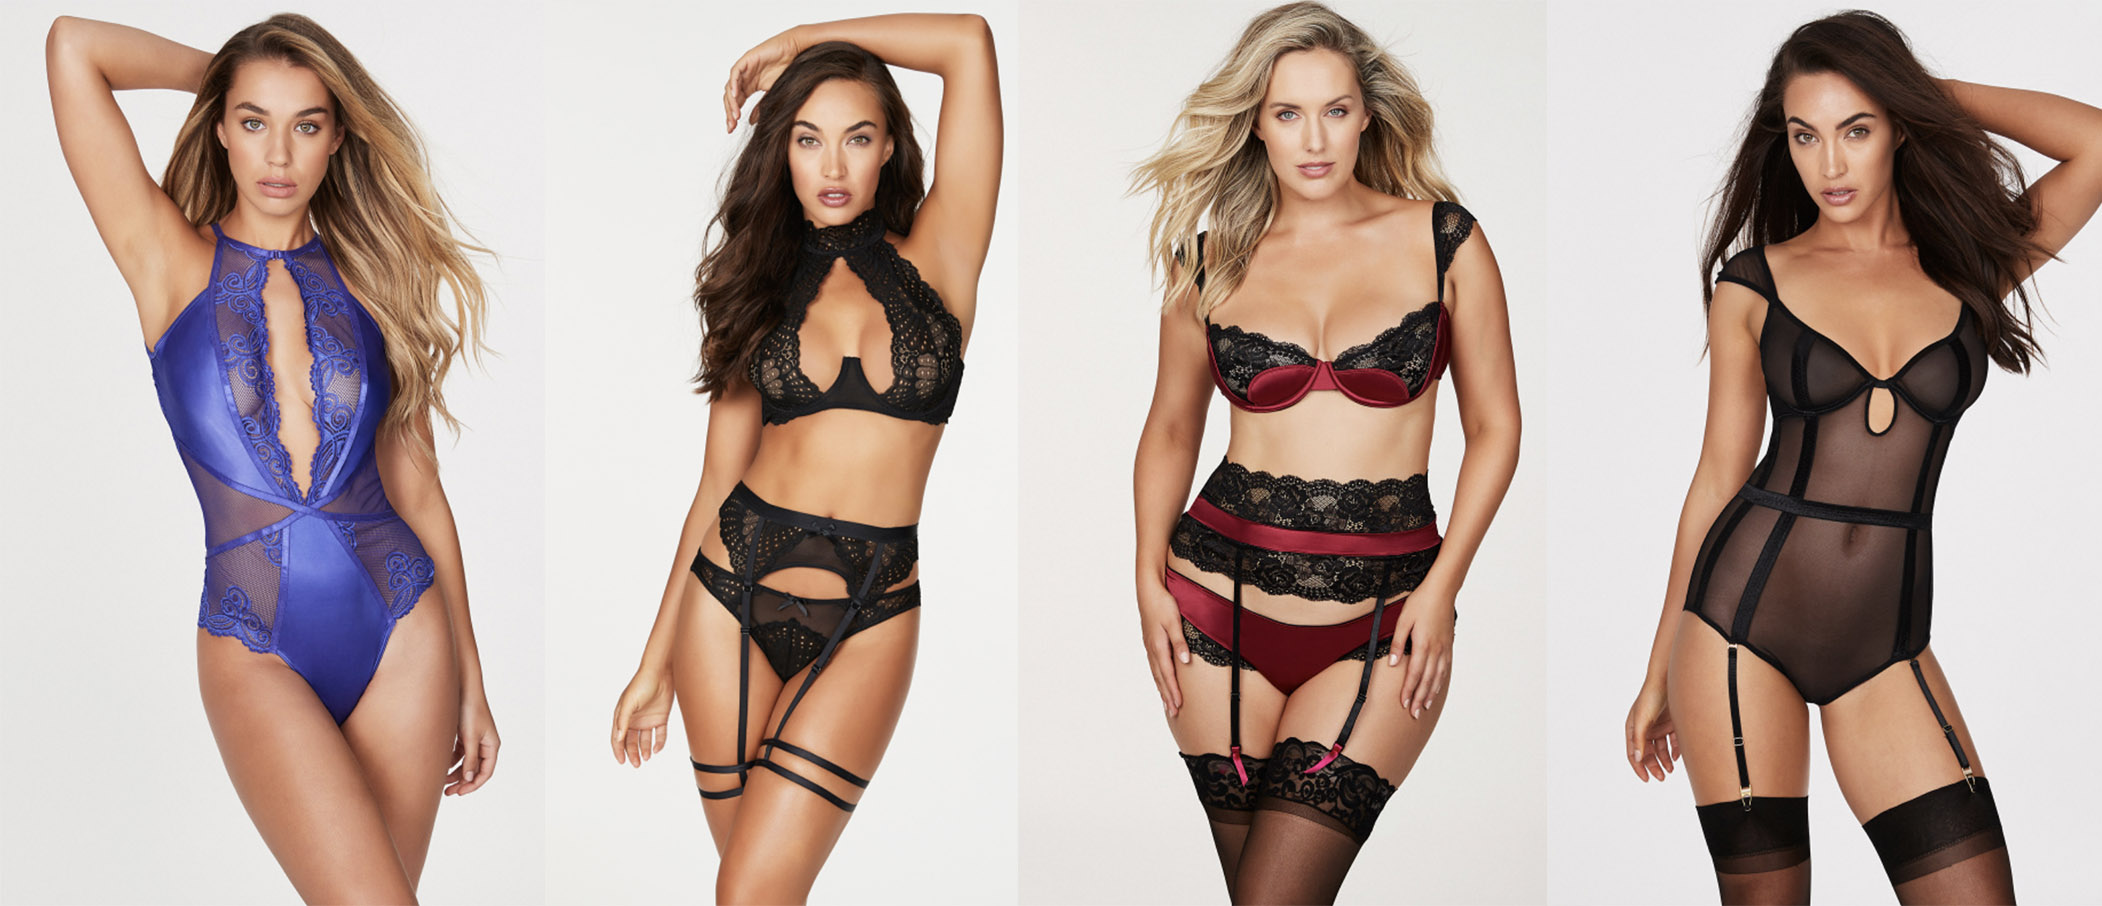 Frederick's of Hollywood | Where to shop for your boudoir session | Online lingerie stores